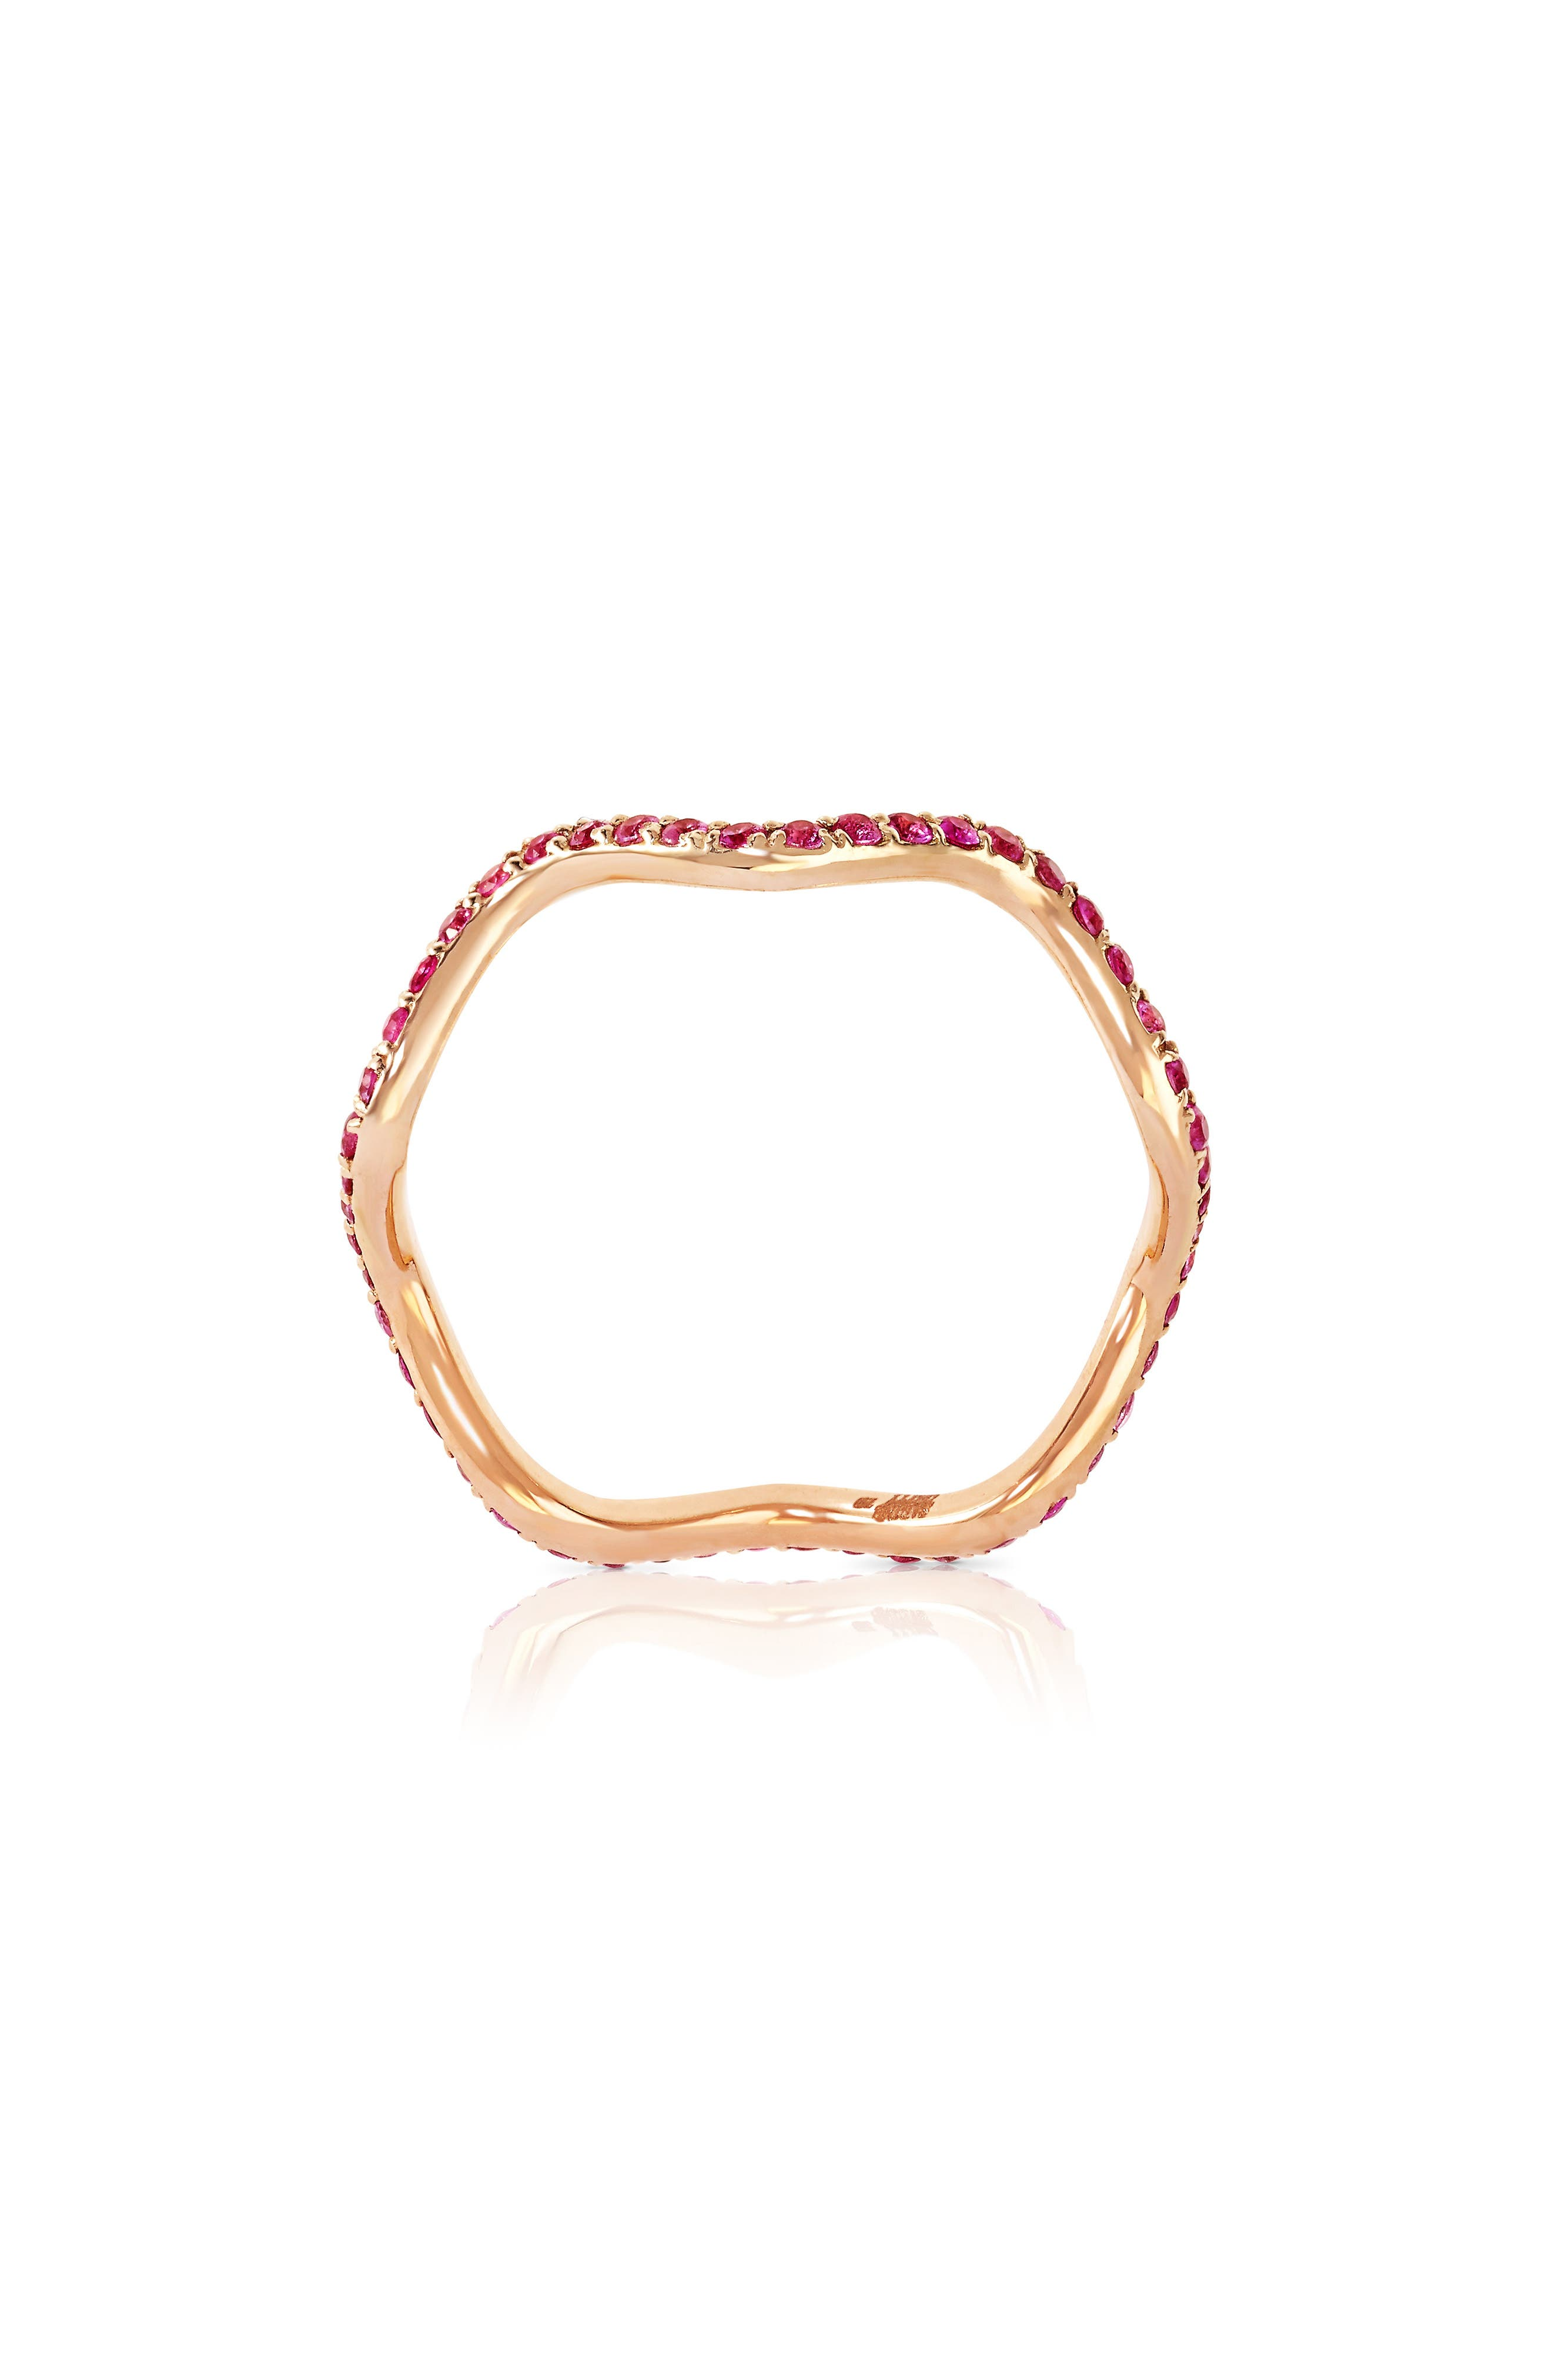 Baby Memphis Pink Sapphire Wave Band Ring,                         Main,                         color, ROSE GOLD PINK SAPPHIRE